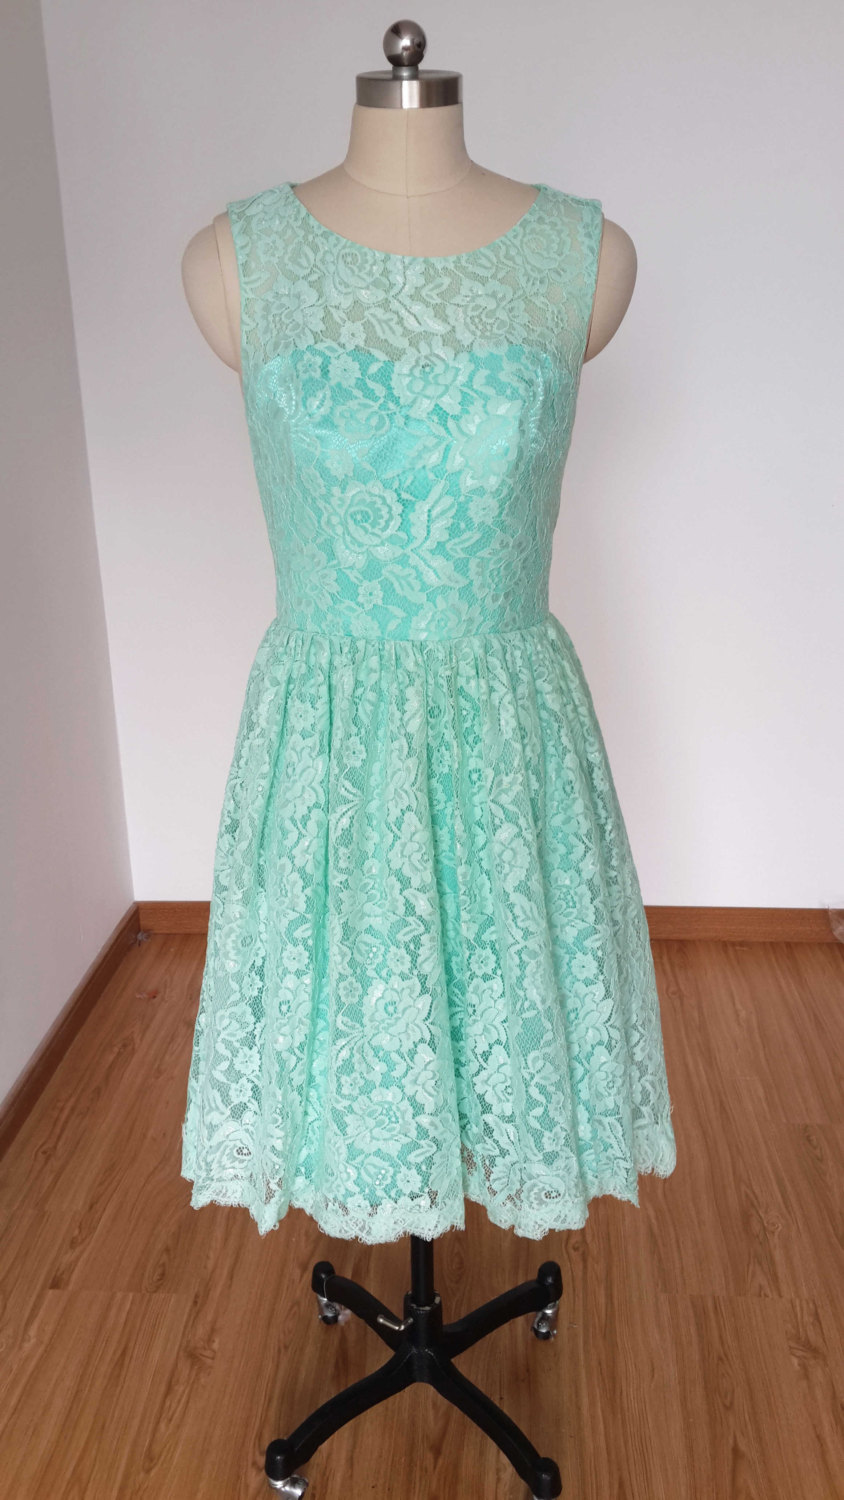 Mint green lace bridesmaid dress junior bridesmaid dresses knee mint green lace bridesmaid dress junior bridesmaid dresses knee length short bridesmaid dress cheap bridesmaid dresses wedding party dress ombrellifo Choice Image